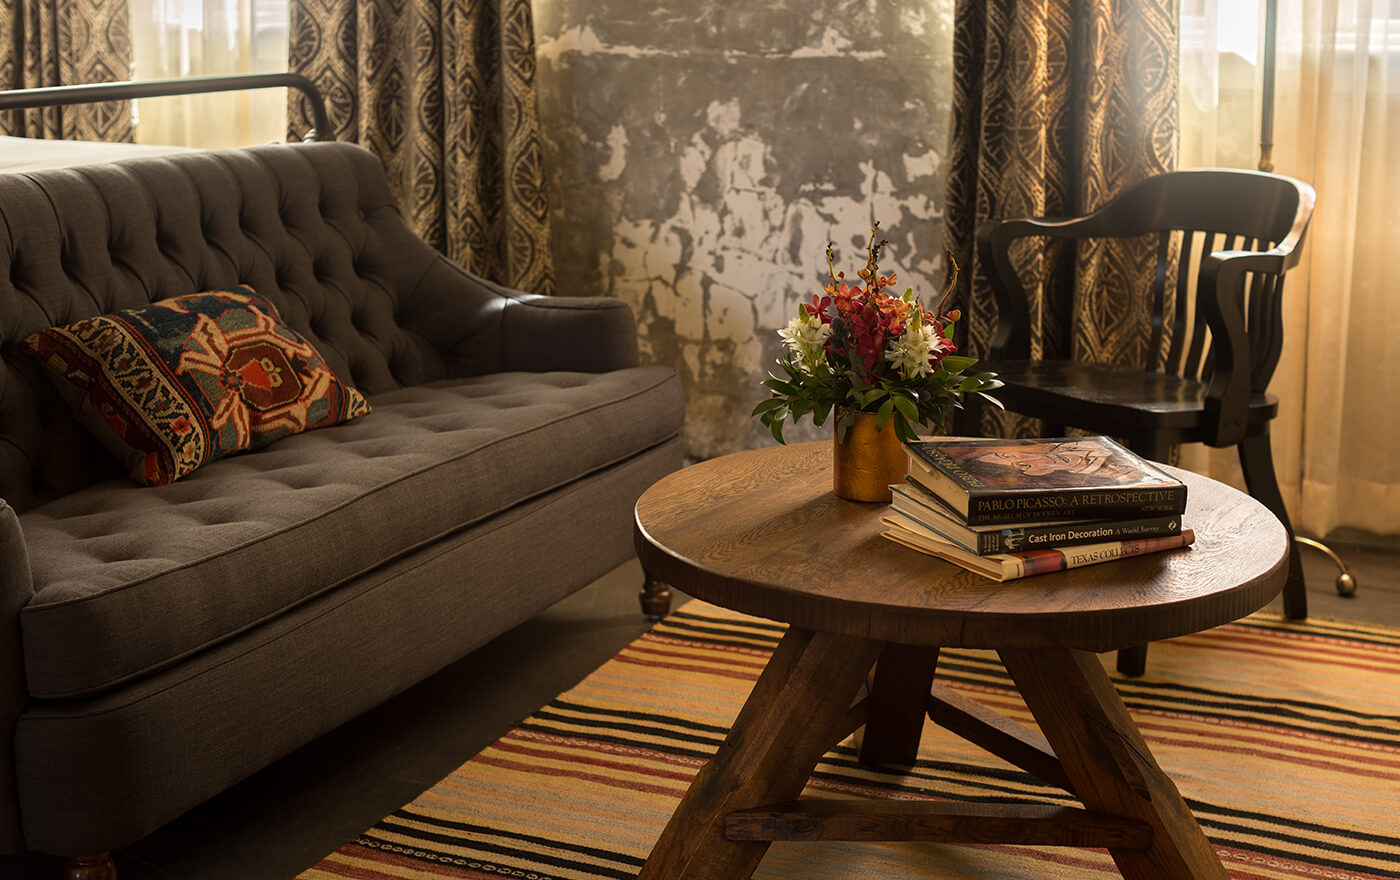 Picture of a grey couch with a wooden table with a bouquet of flowers and some books in Hotel Emma's Emma Koehler suite option.